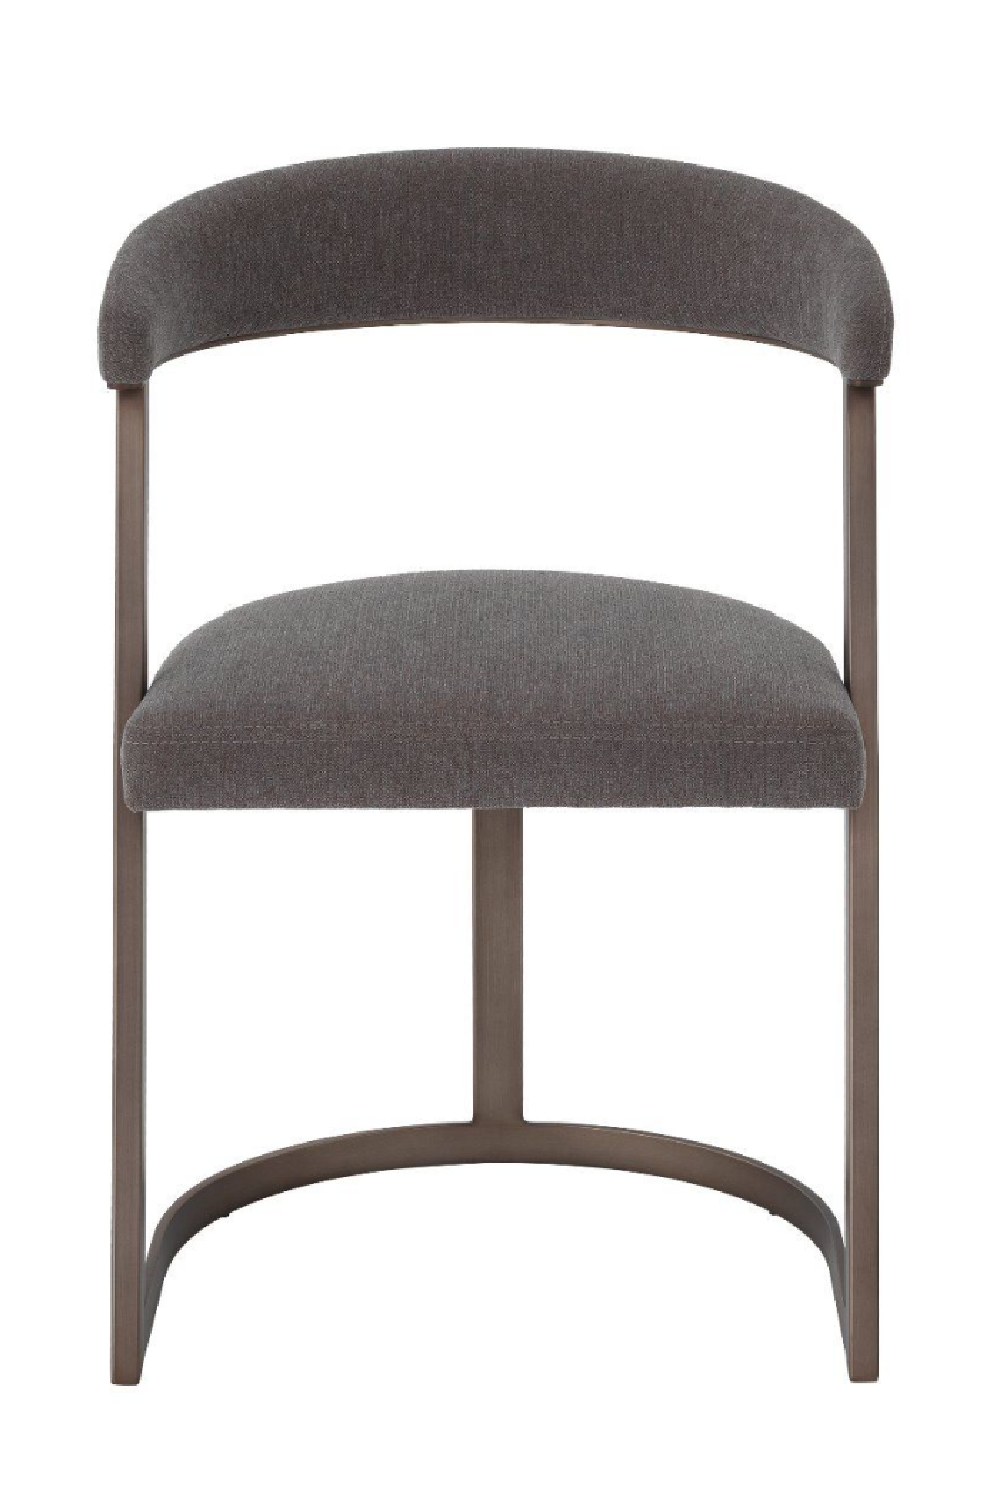 Bronze Curved Back Dining Chair | Eichholtz Dexter | OROA Luxury Furniture